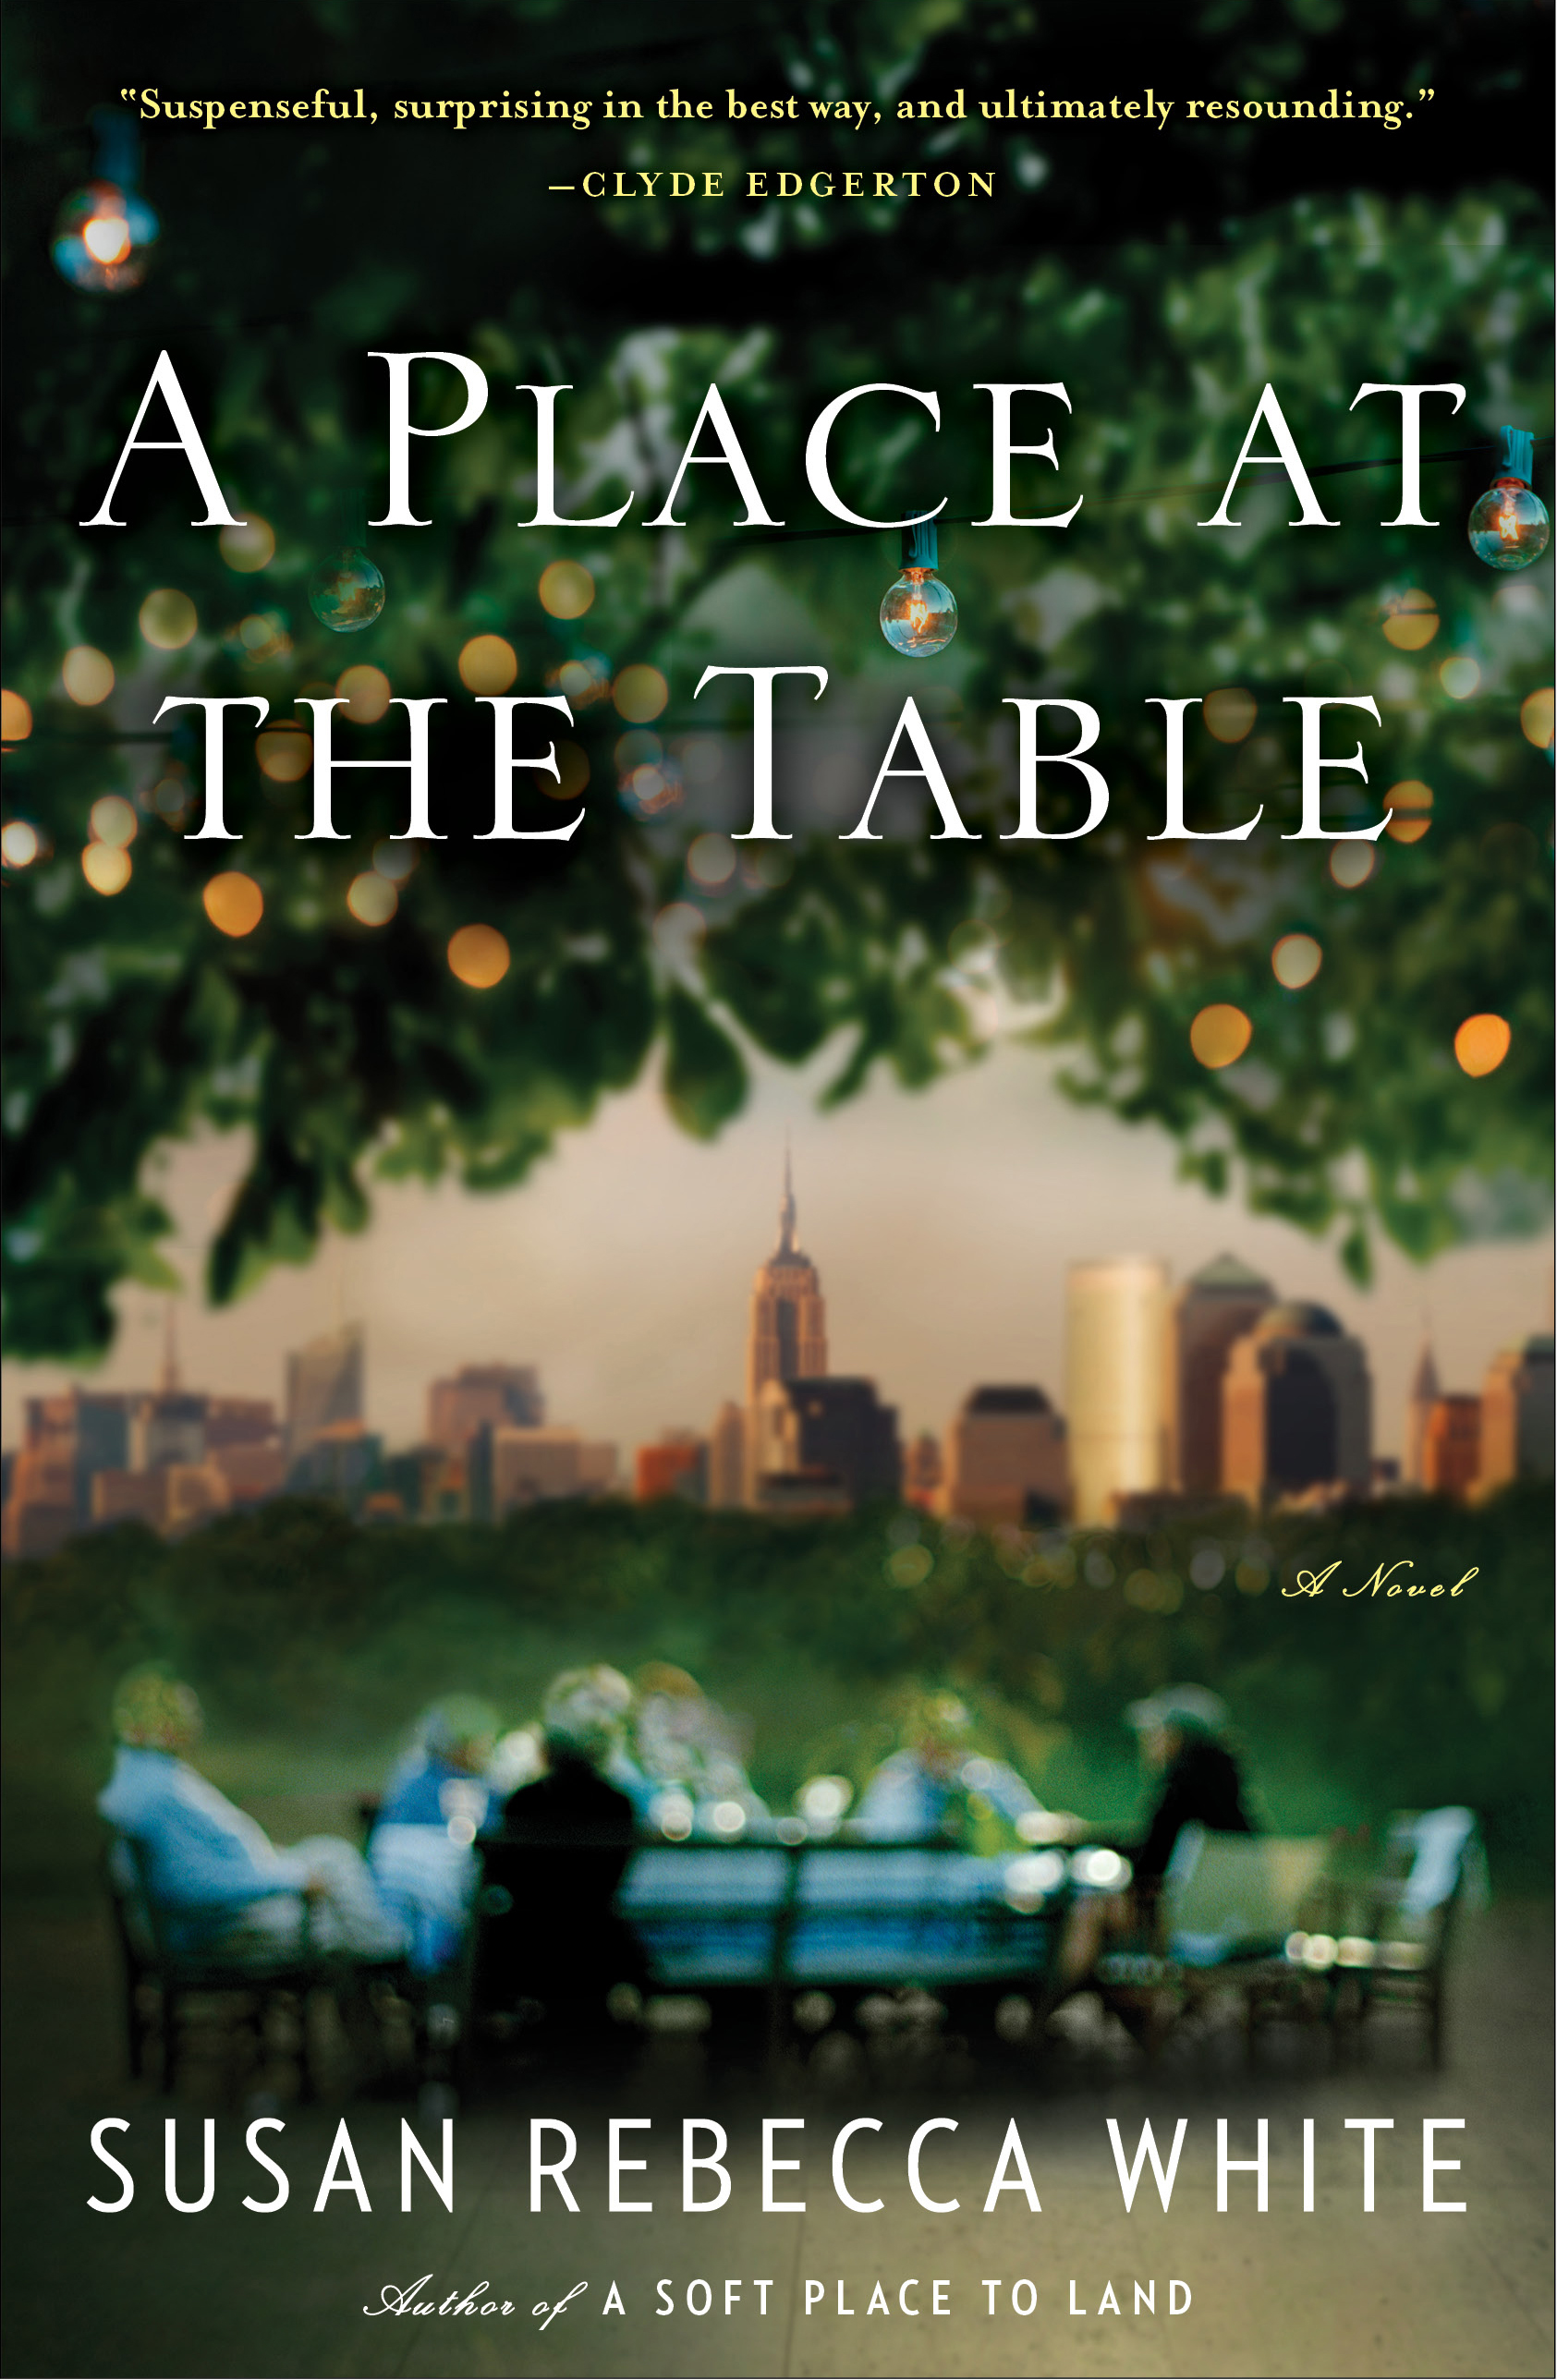 A-Place-At-the-Table-final-cover.jpg